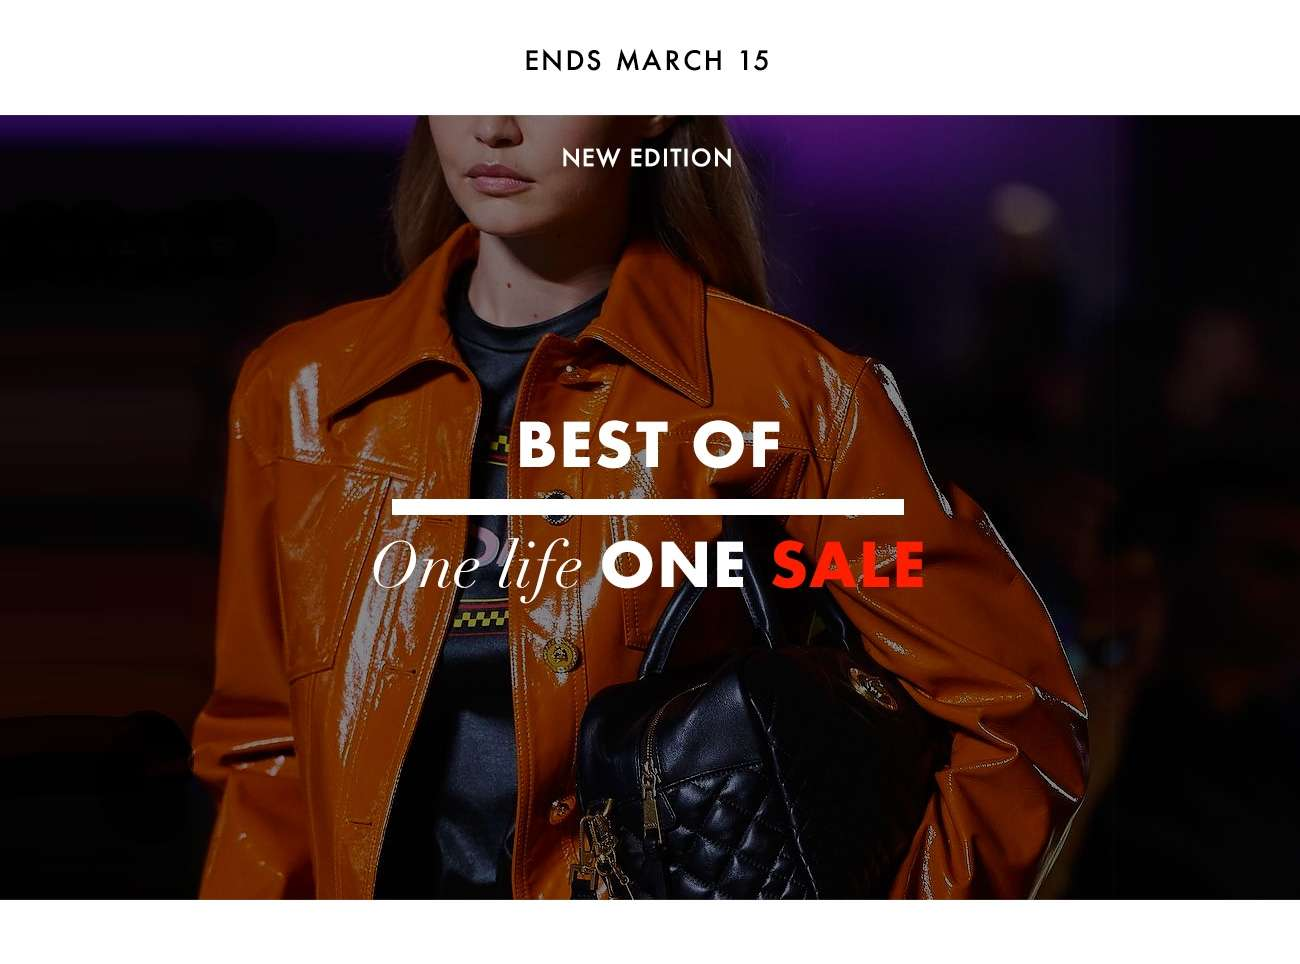 BEST OF ONE LIFE ONE SALE